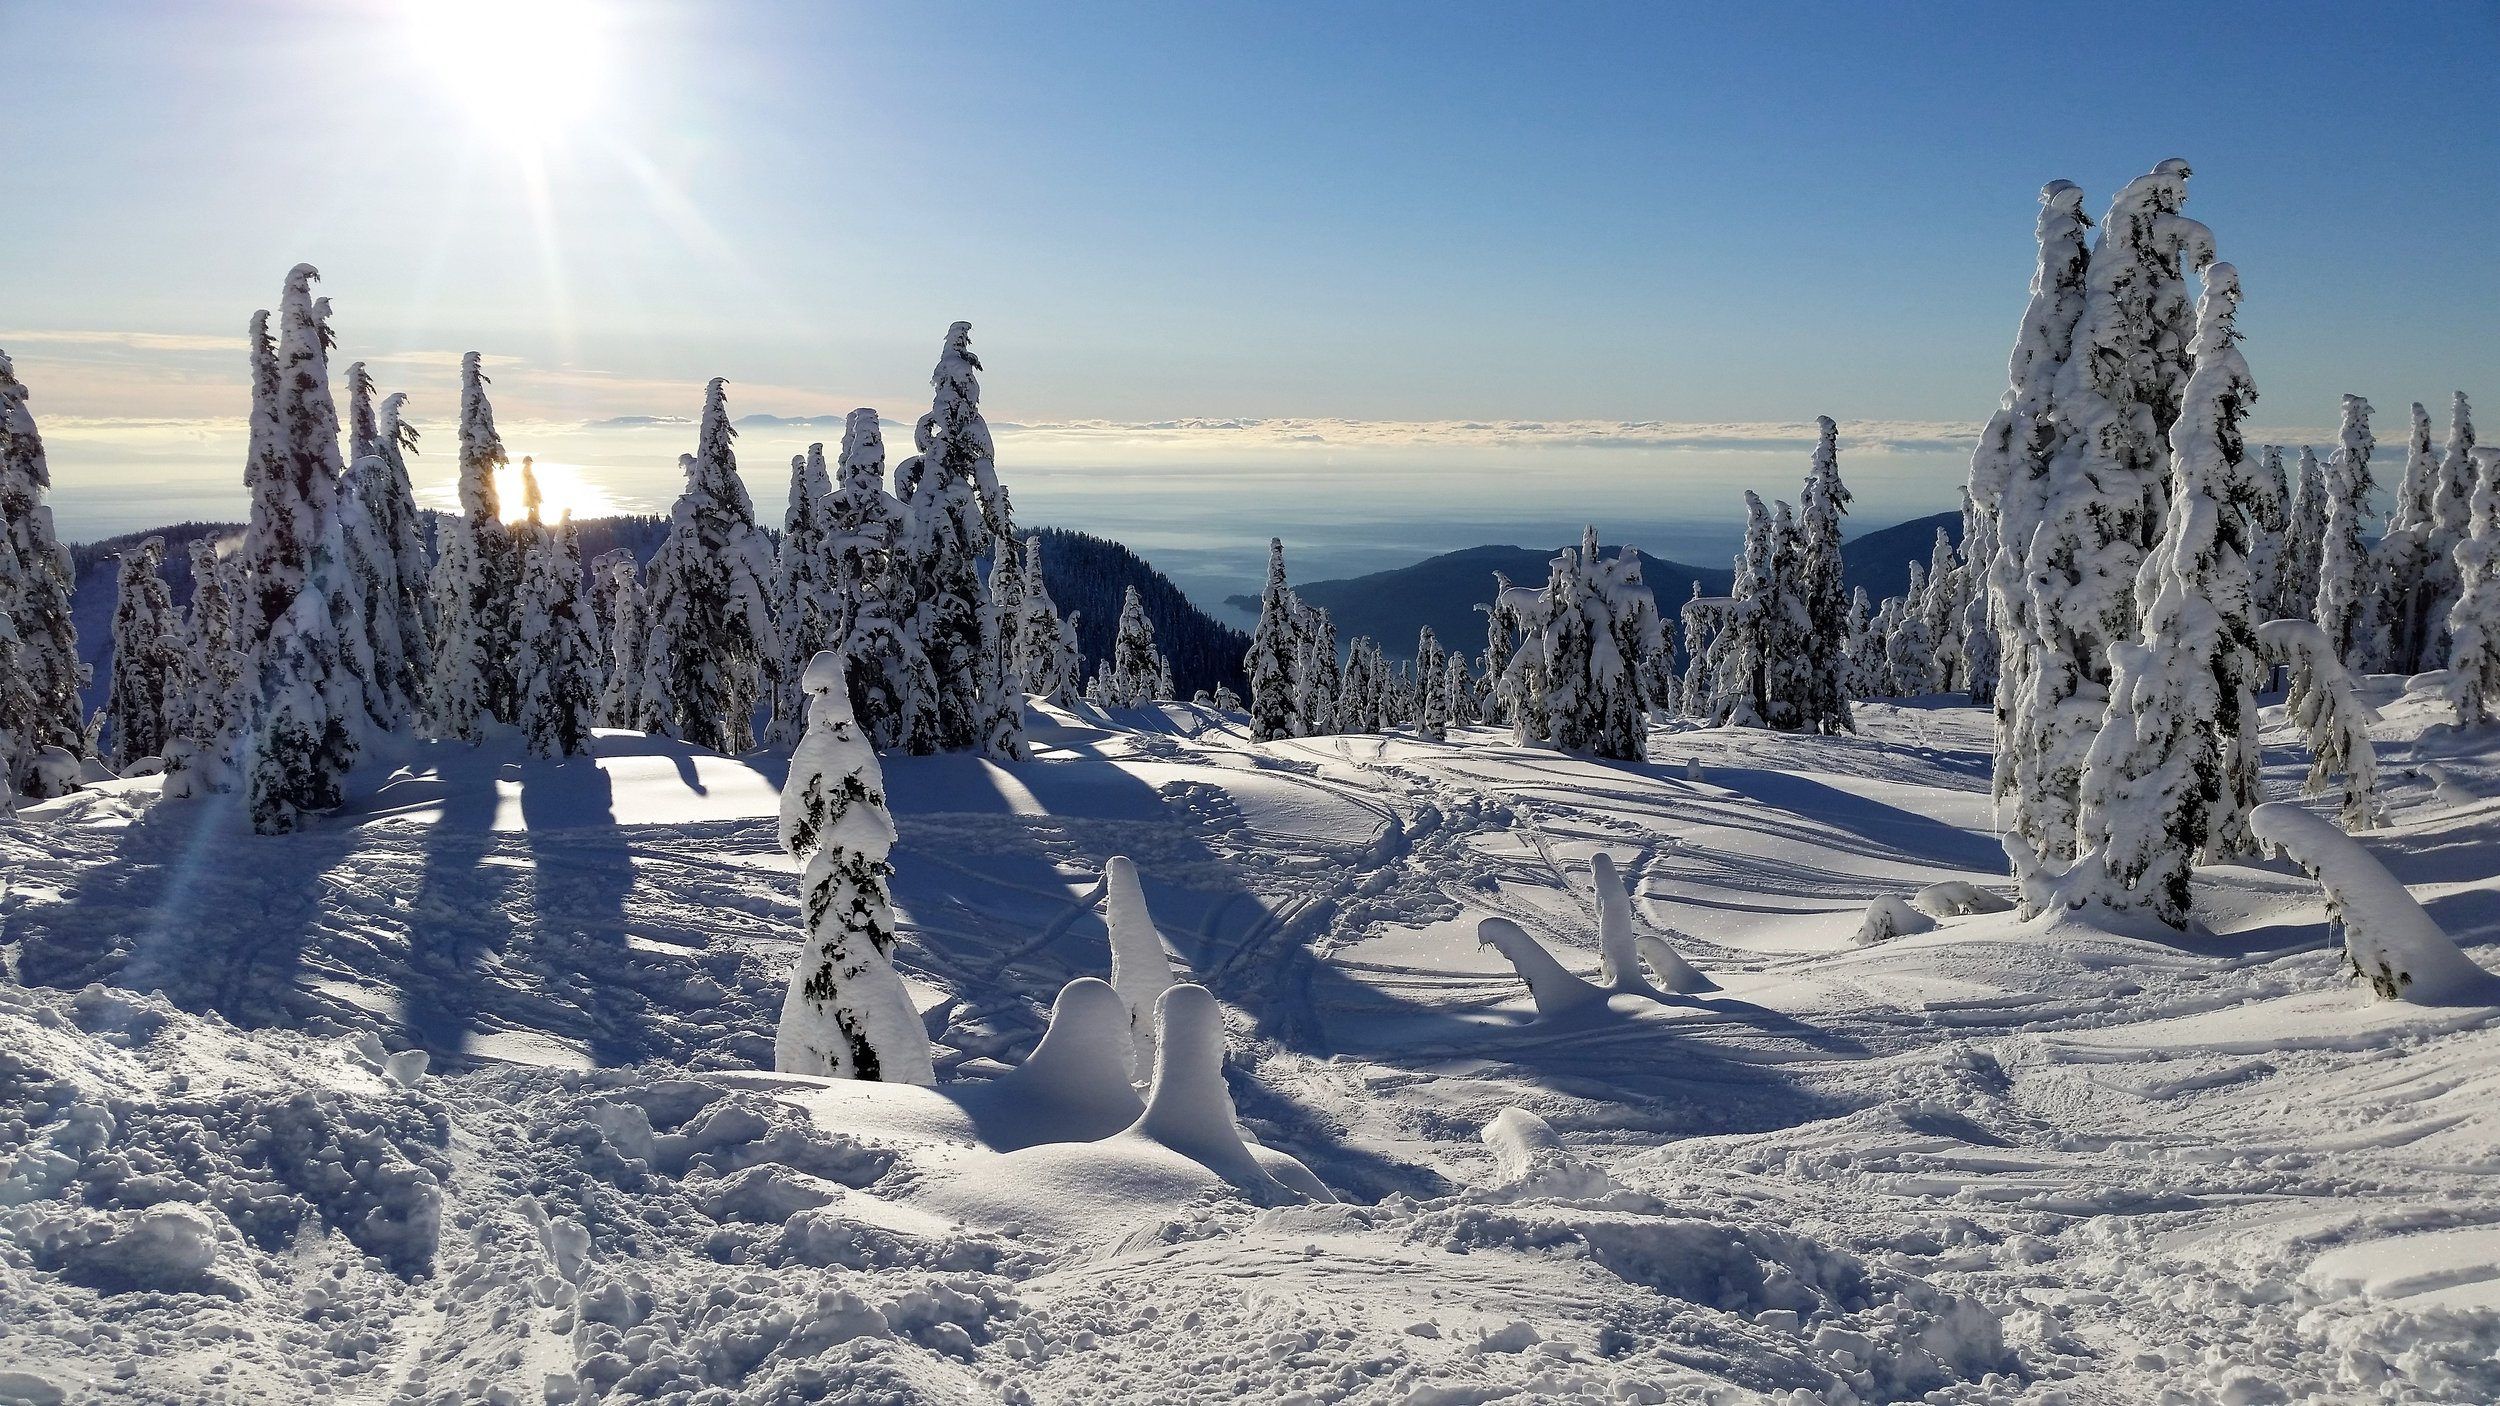 Skiing and Snowboarding in freshly fallen snow